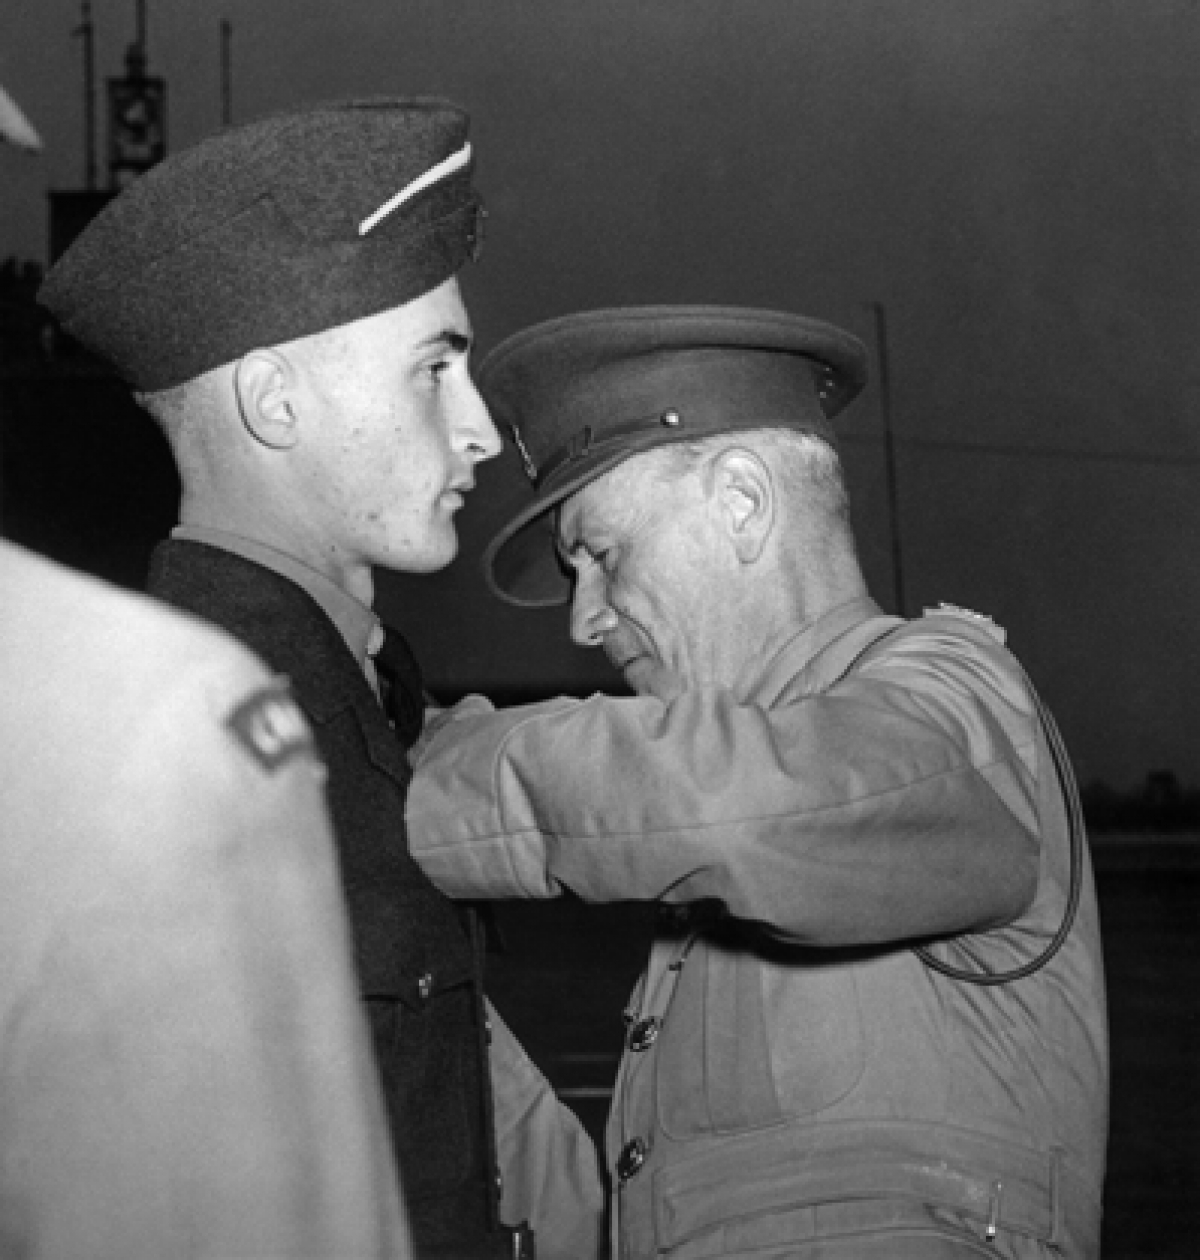 Al Williams gets his wings from Air Commodore Dave Harding, 14 August 1942.